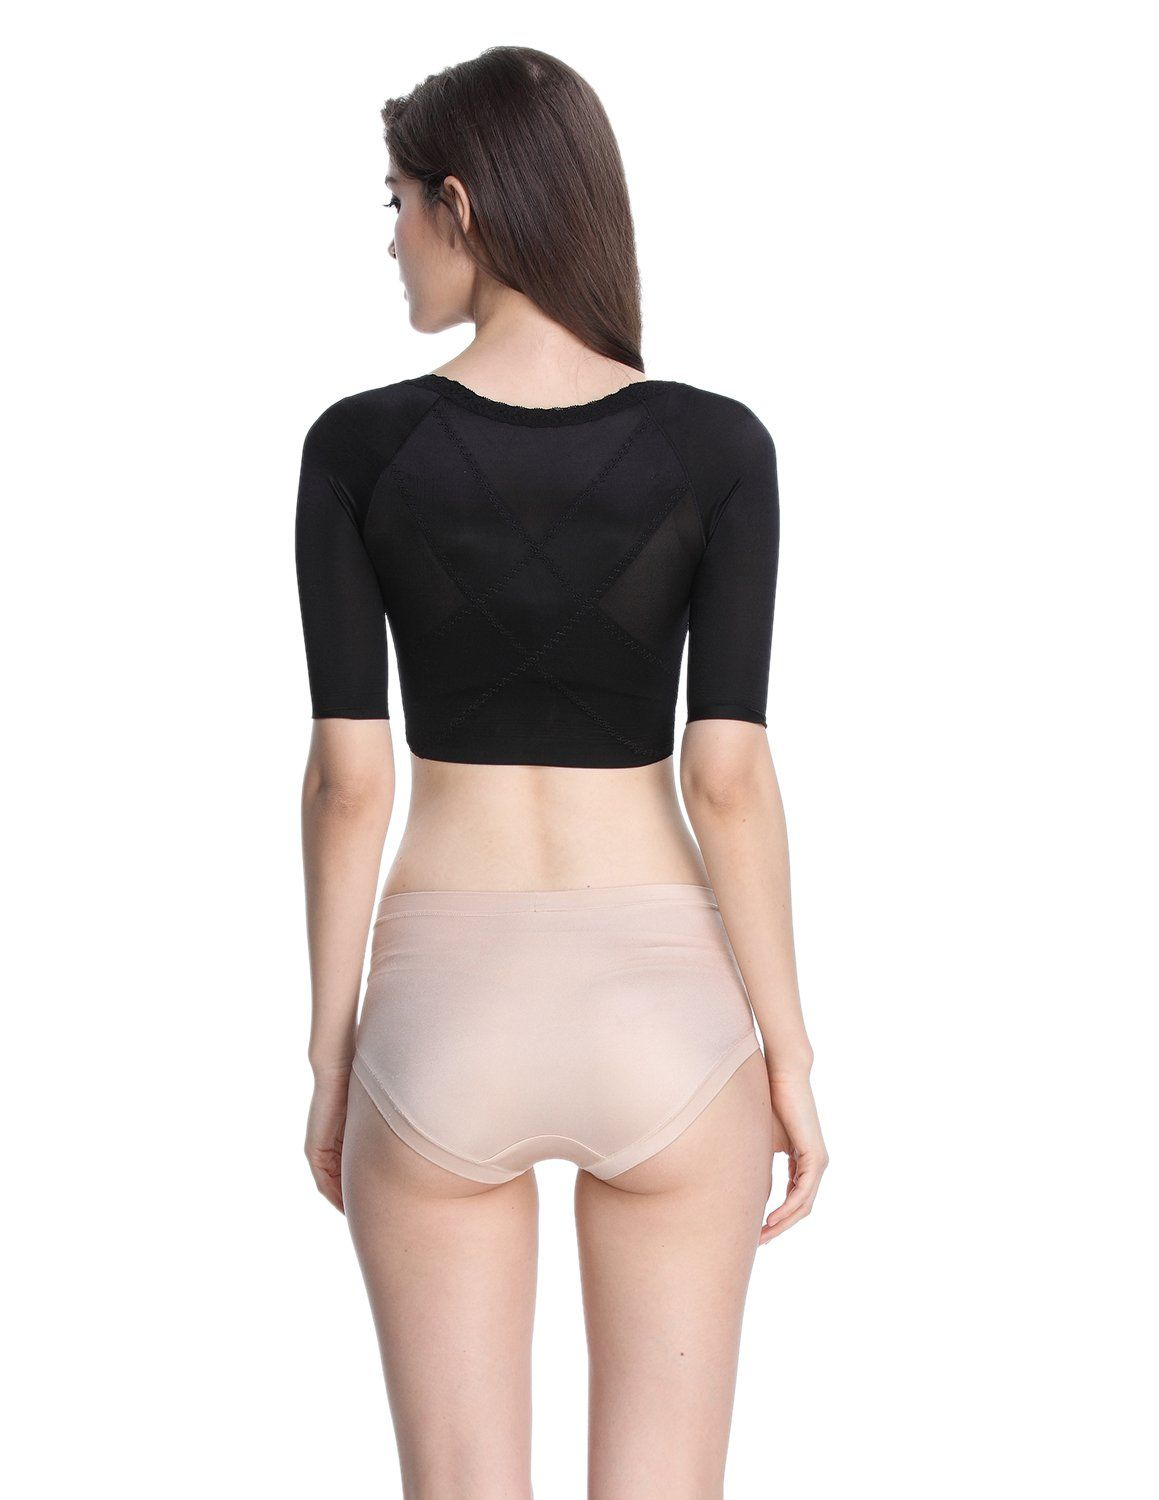 690fb644440 Shymay Womens Shapewear Tops Wear Your Own Bra Short Sleeve Crop Top Arm  Shapers Black Tag